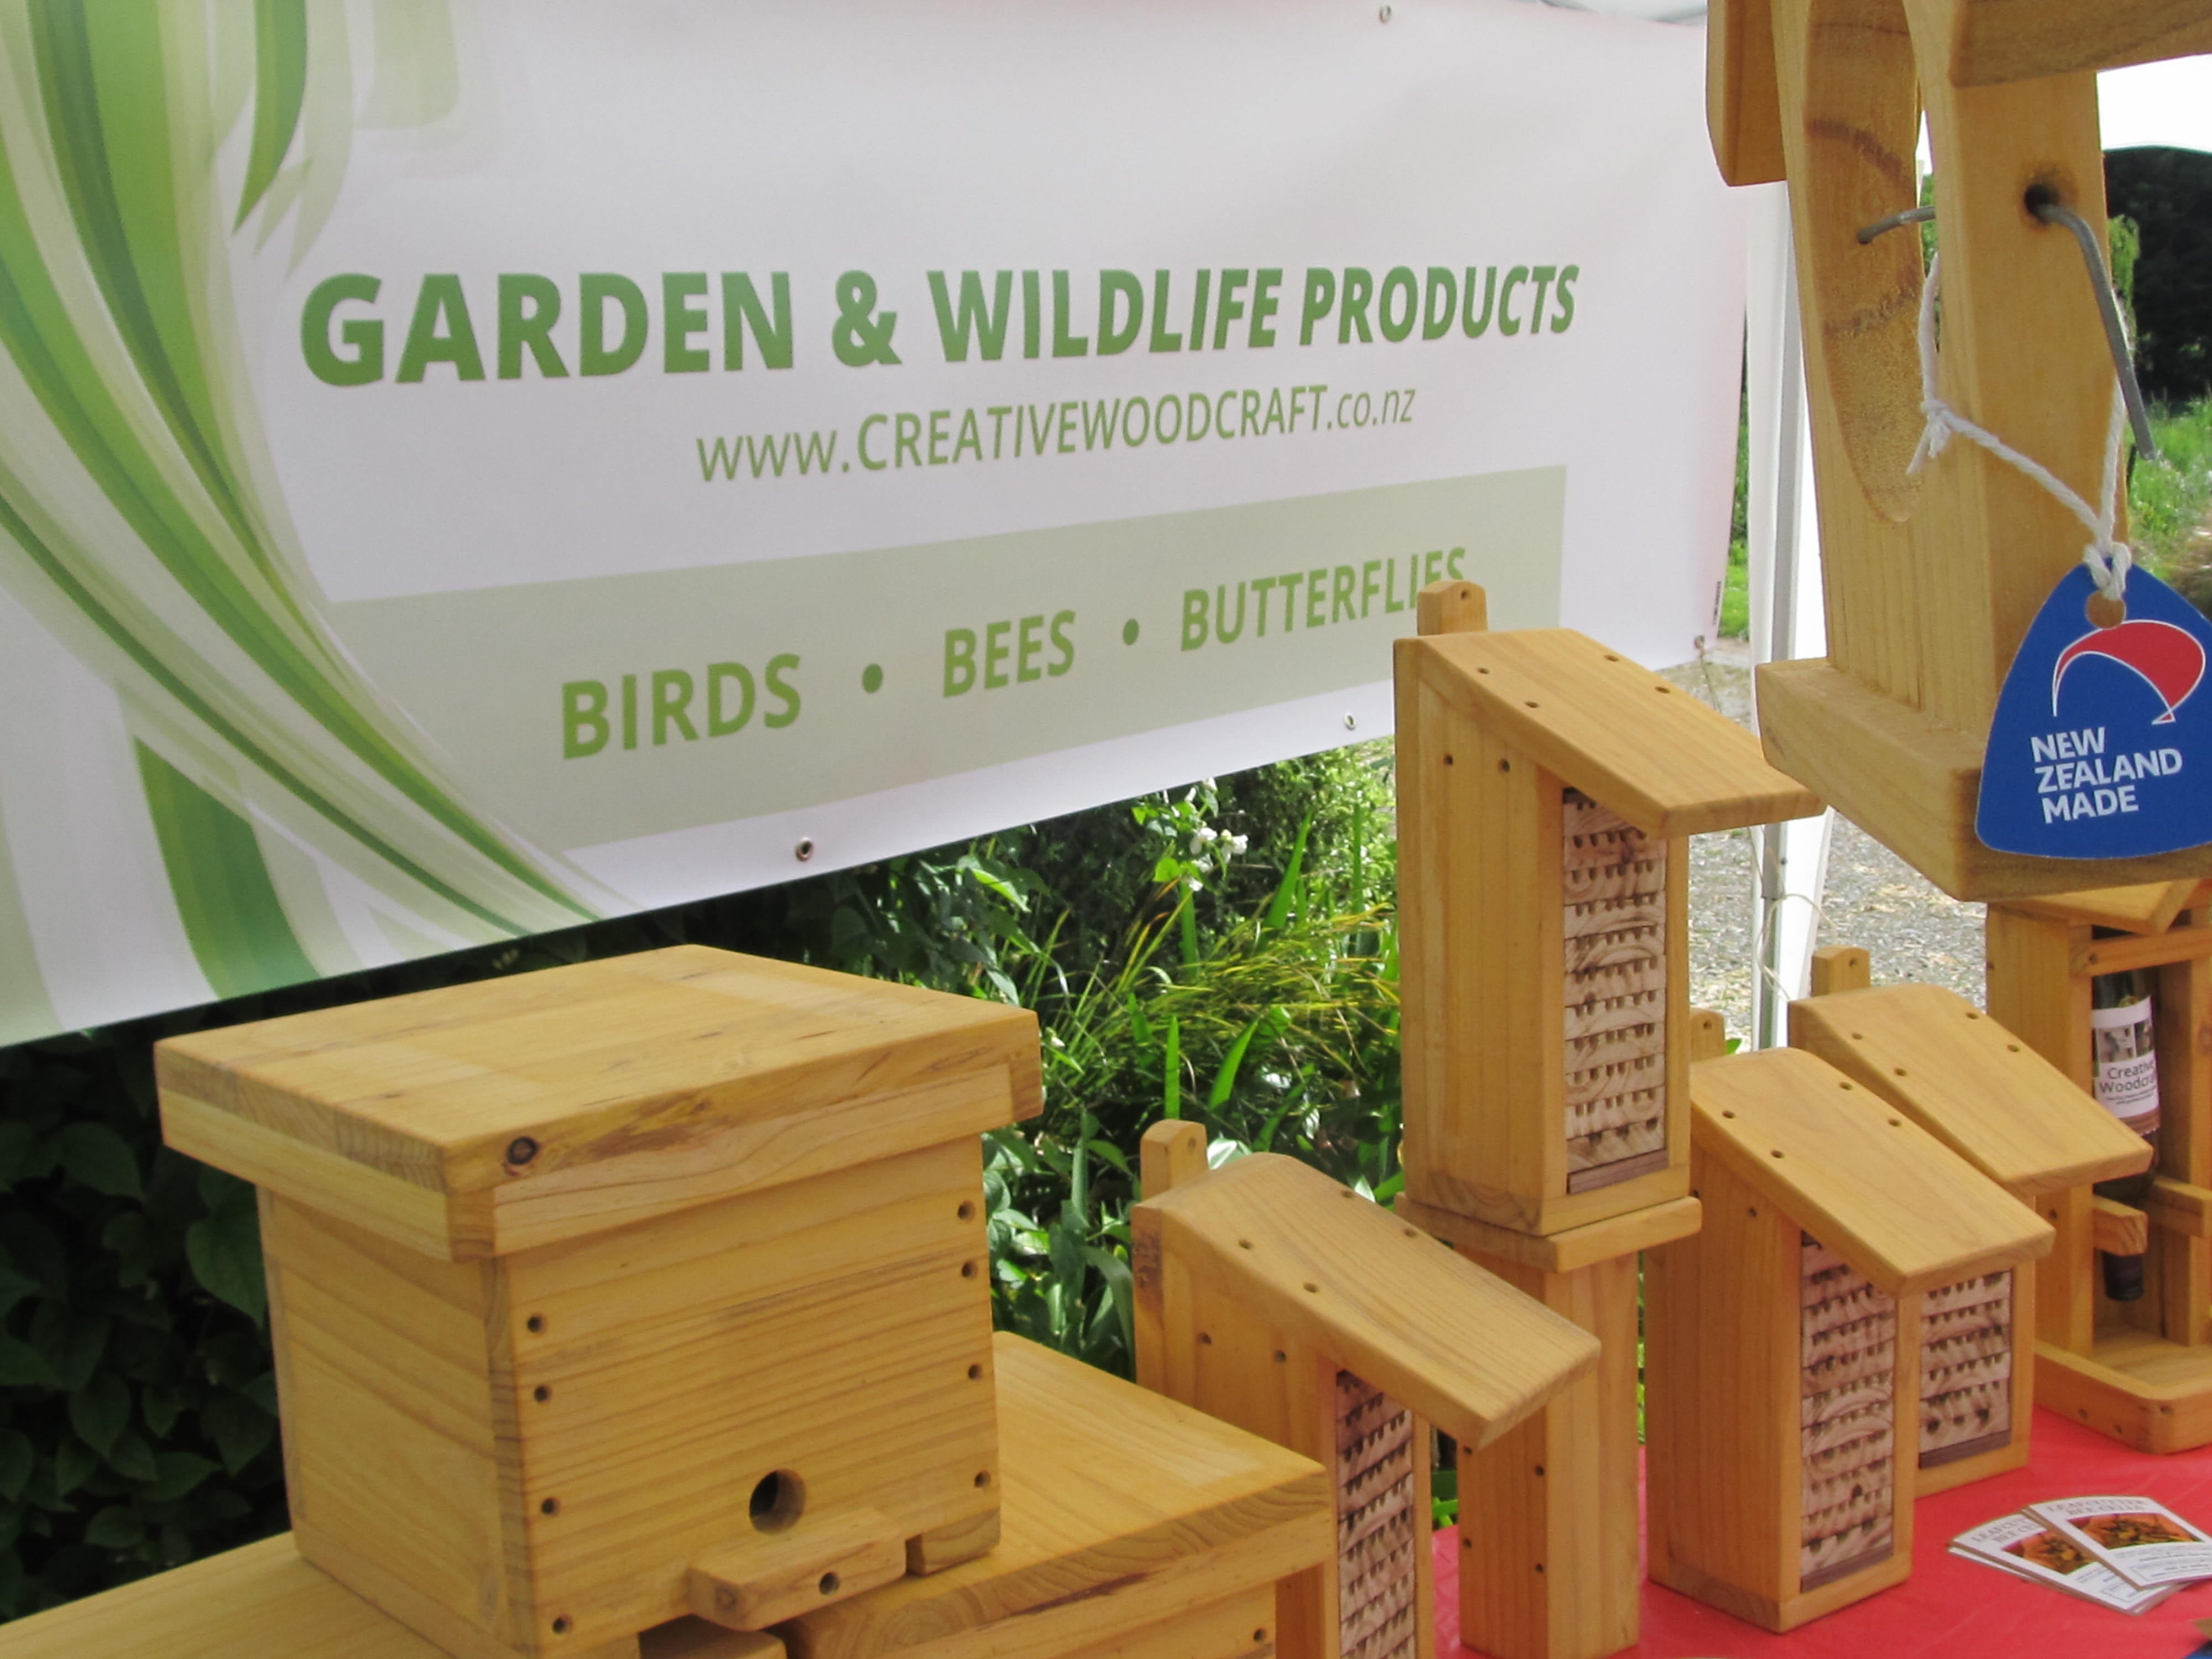 Check Out Our Custom Designed Hand Crafted Bee Habitats And Make Your  Garden Bee Friendly. BUTTERFLIES: Our Butterfly Products Offer Migrating  And ...